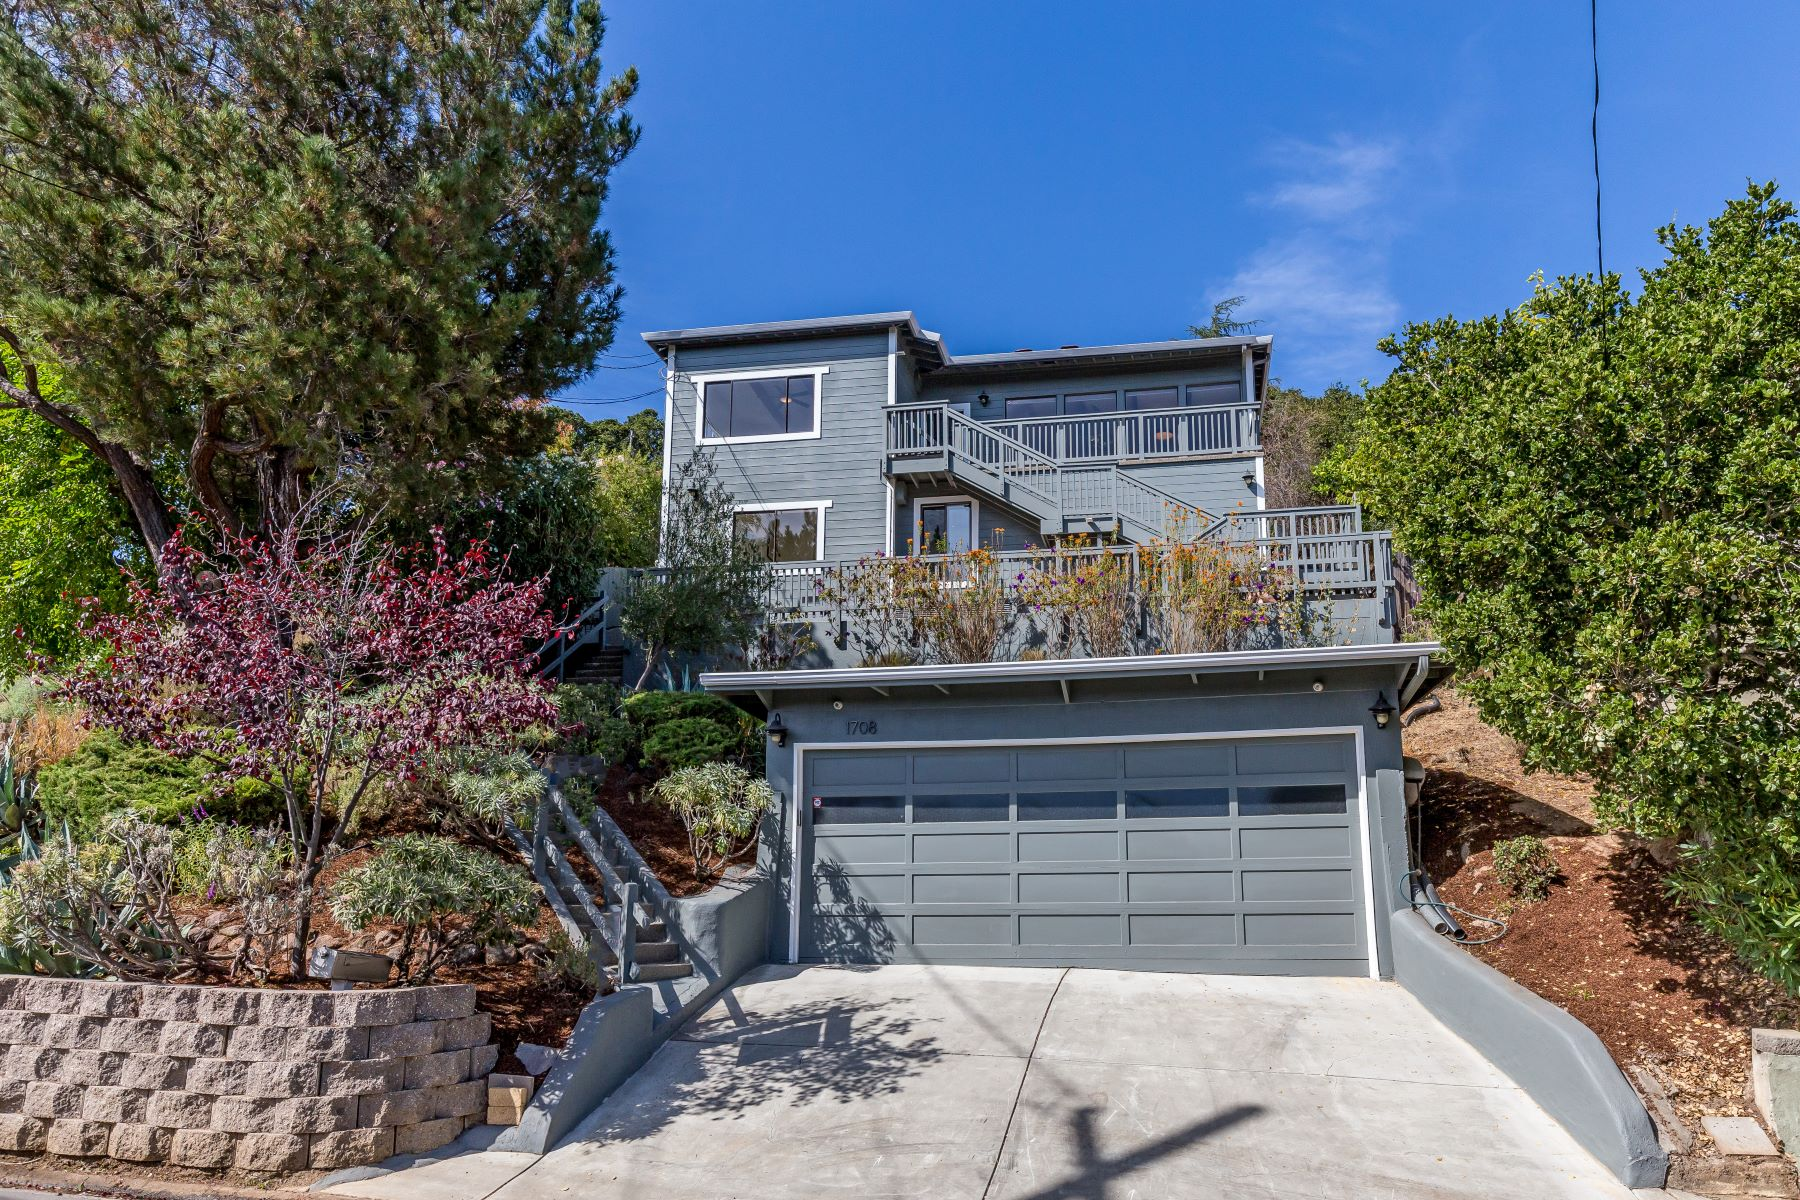 Single Family Homes for Sale at Urban Chic Remodel with Views 1708 Terrace Drive Belmont, California 94002 United States